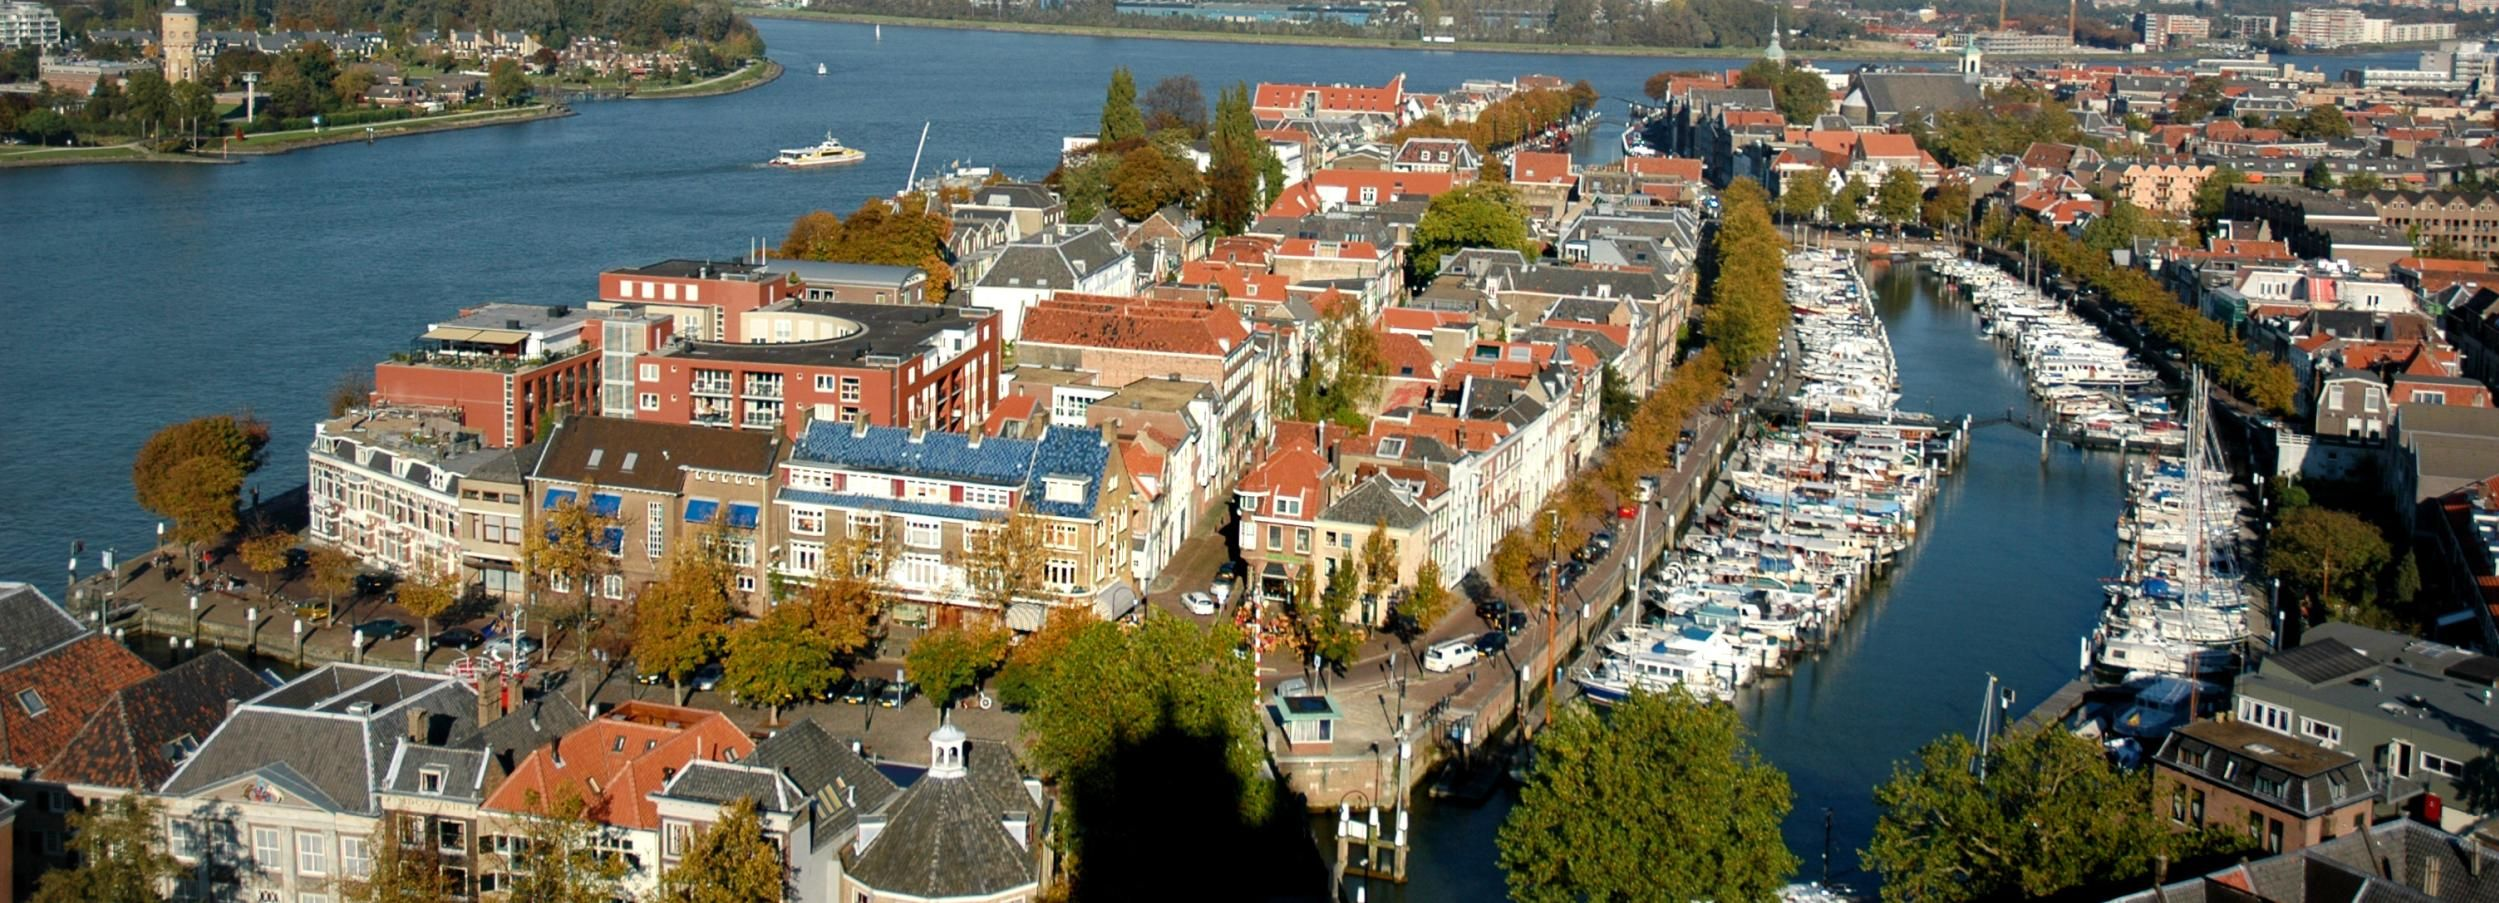 Dordrecht Walking Tour: the Oldest City in the Netherlands